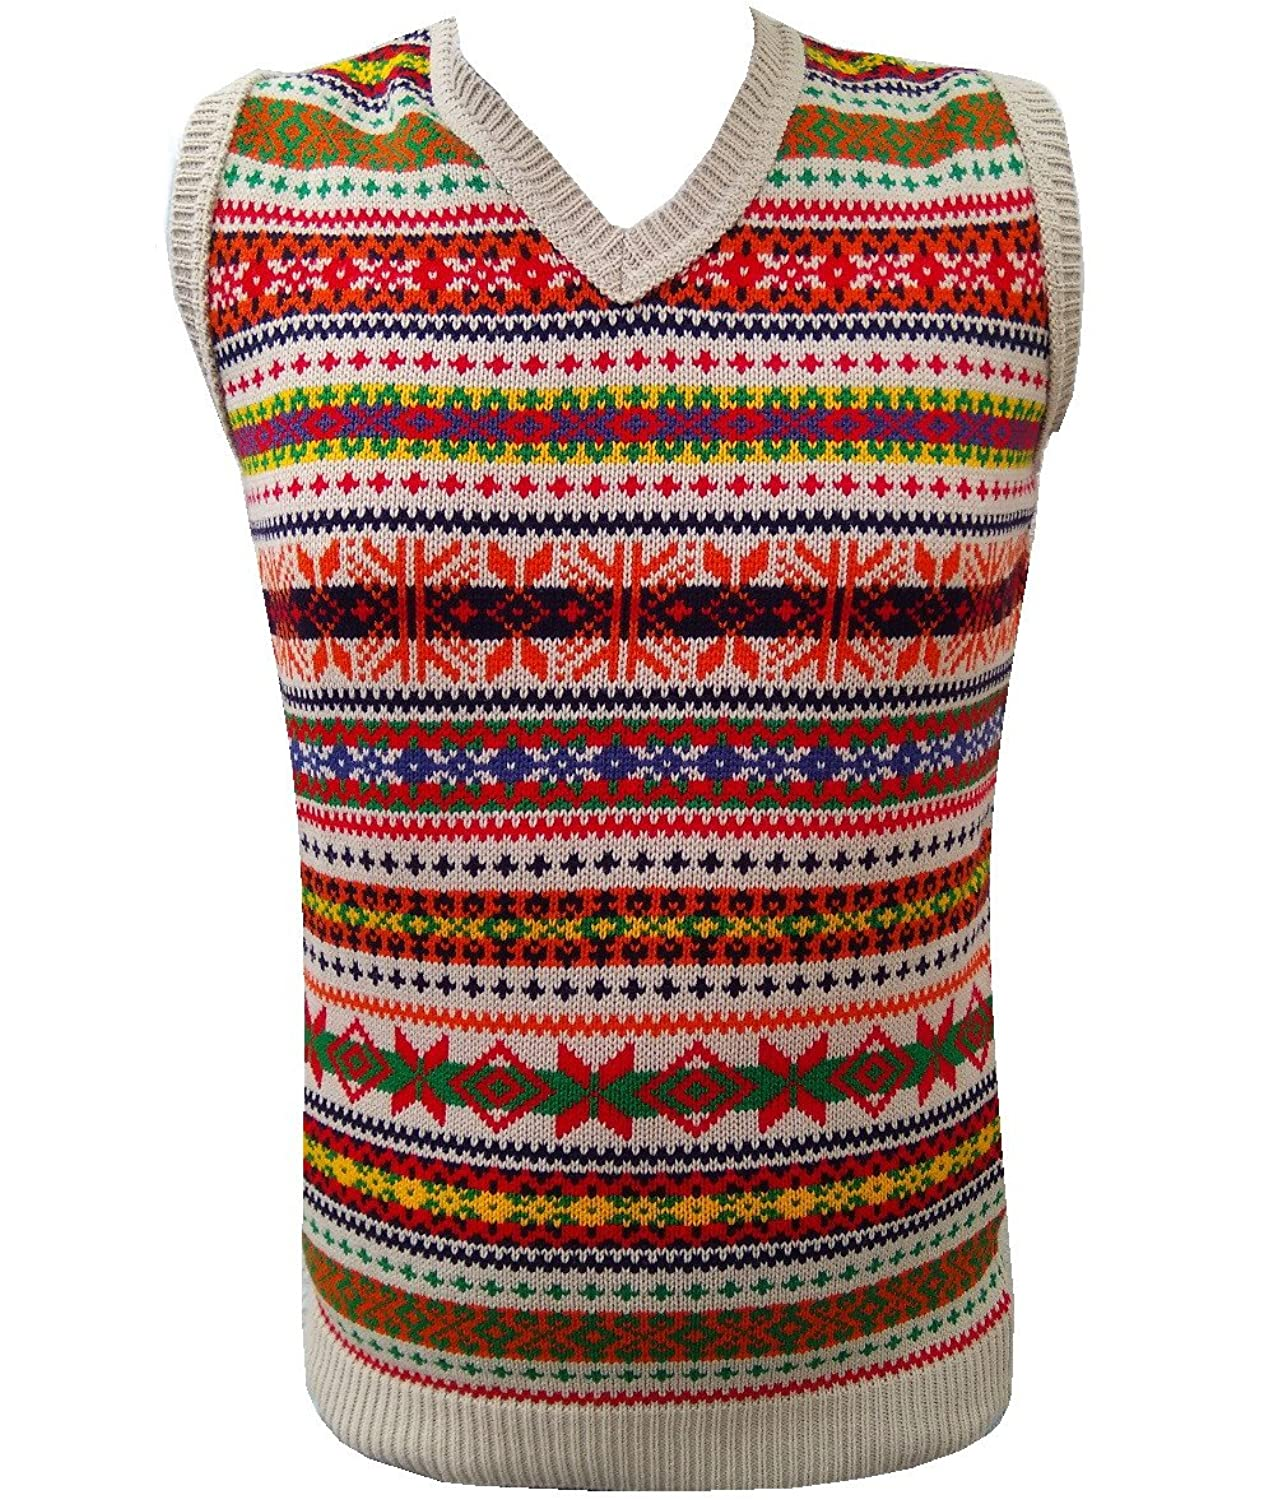 Peaky Blinders & Boardwalk Empire: Men's 1920s Gangster Clothing London Knitwear Gallery Retro Vintage Knitwear Tanktop Sleeveless Golf Sweater £19.99 AT vintagedancer.com